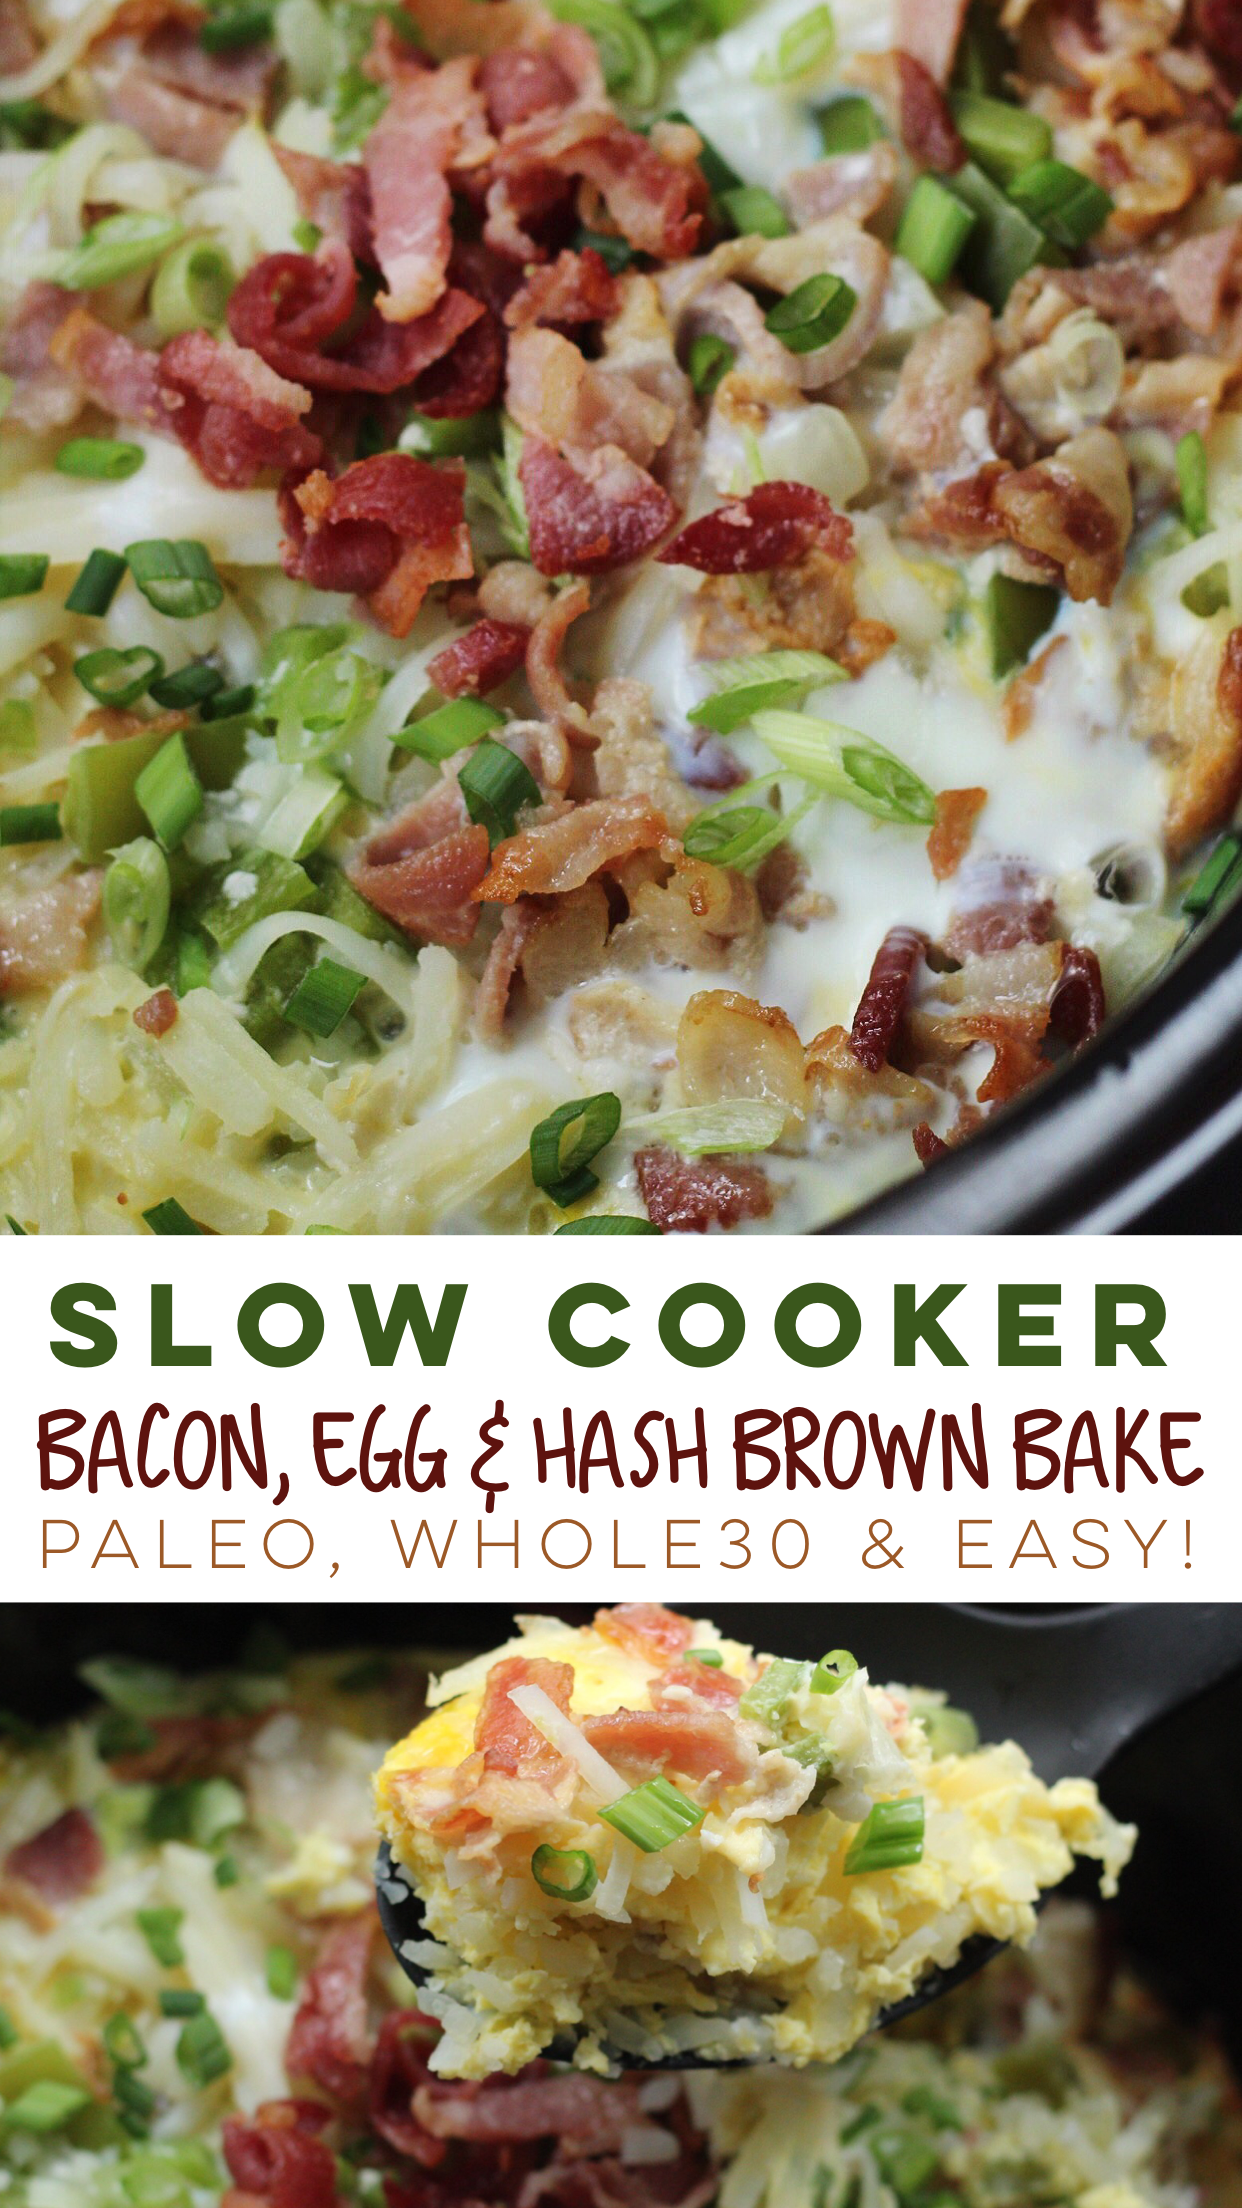 Easy Whole30 and Paleo slow cooker bacon, egg and hash brown bake is the perfect family breakfast or meal prep breakfast! #paleo #slowcooker #whole30breakfast #paleoslowcooker